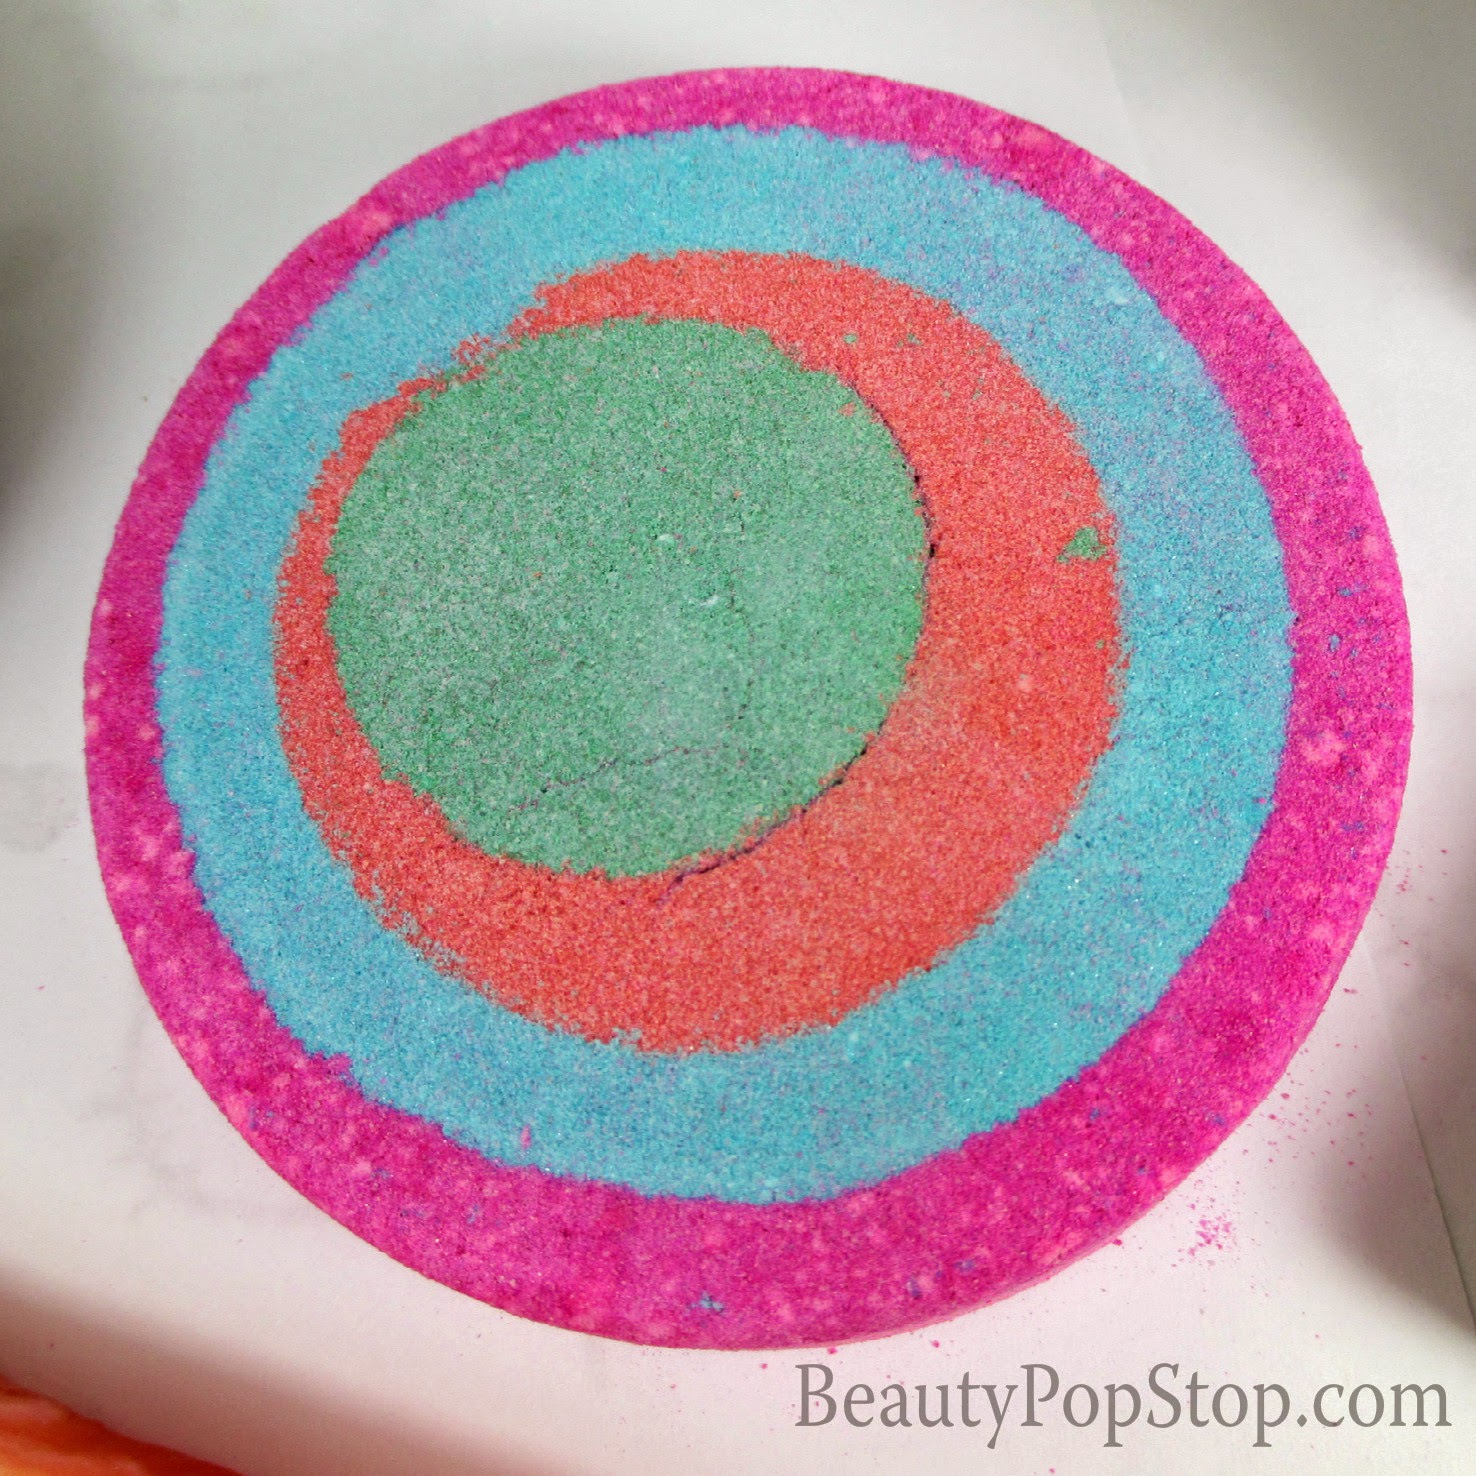 lush granny takes a dip bath bomb review